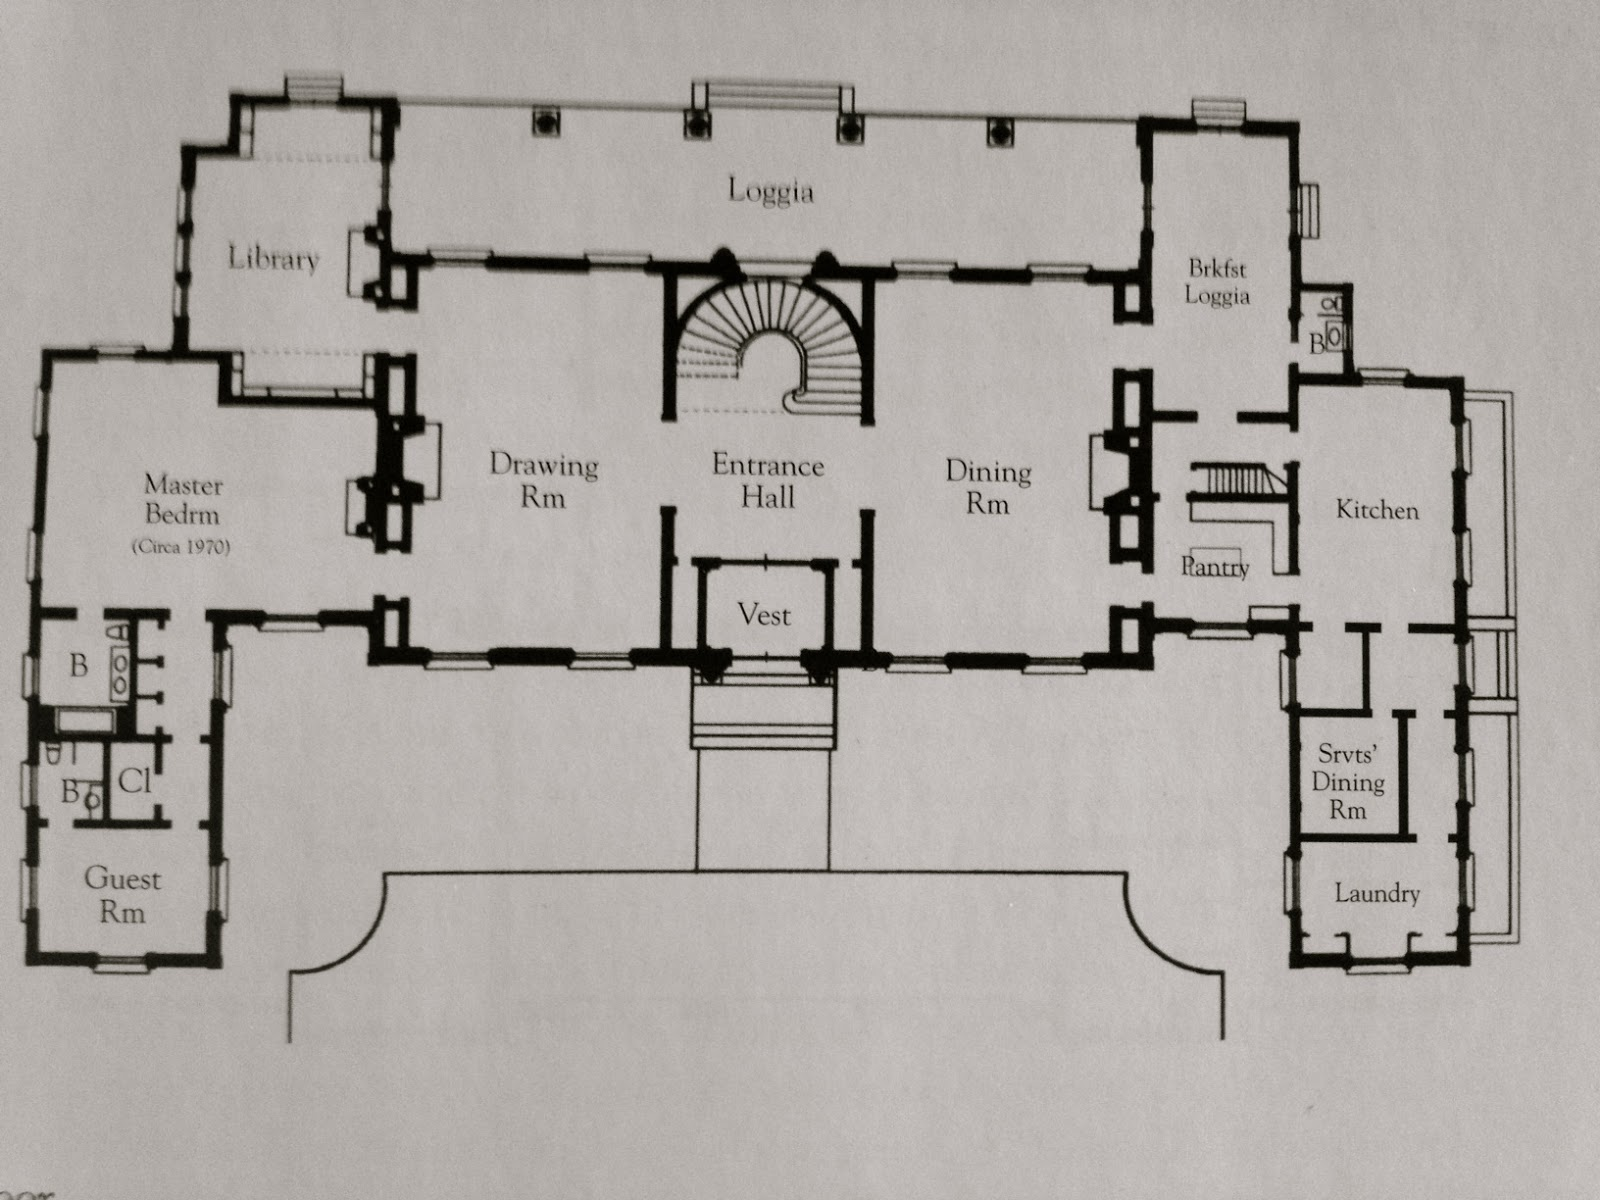 The gilded age era clarendon court poor sunny 39 s newport for Mansions floor plans